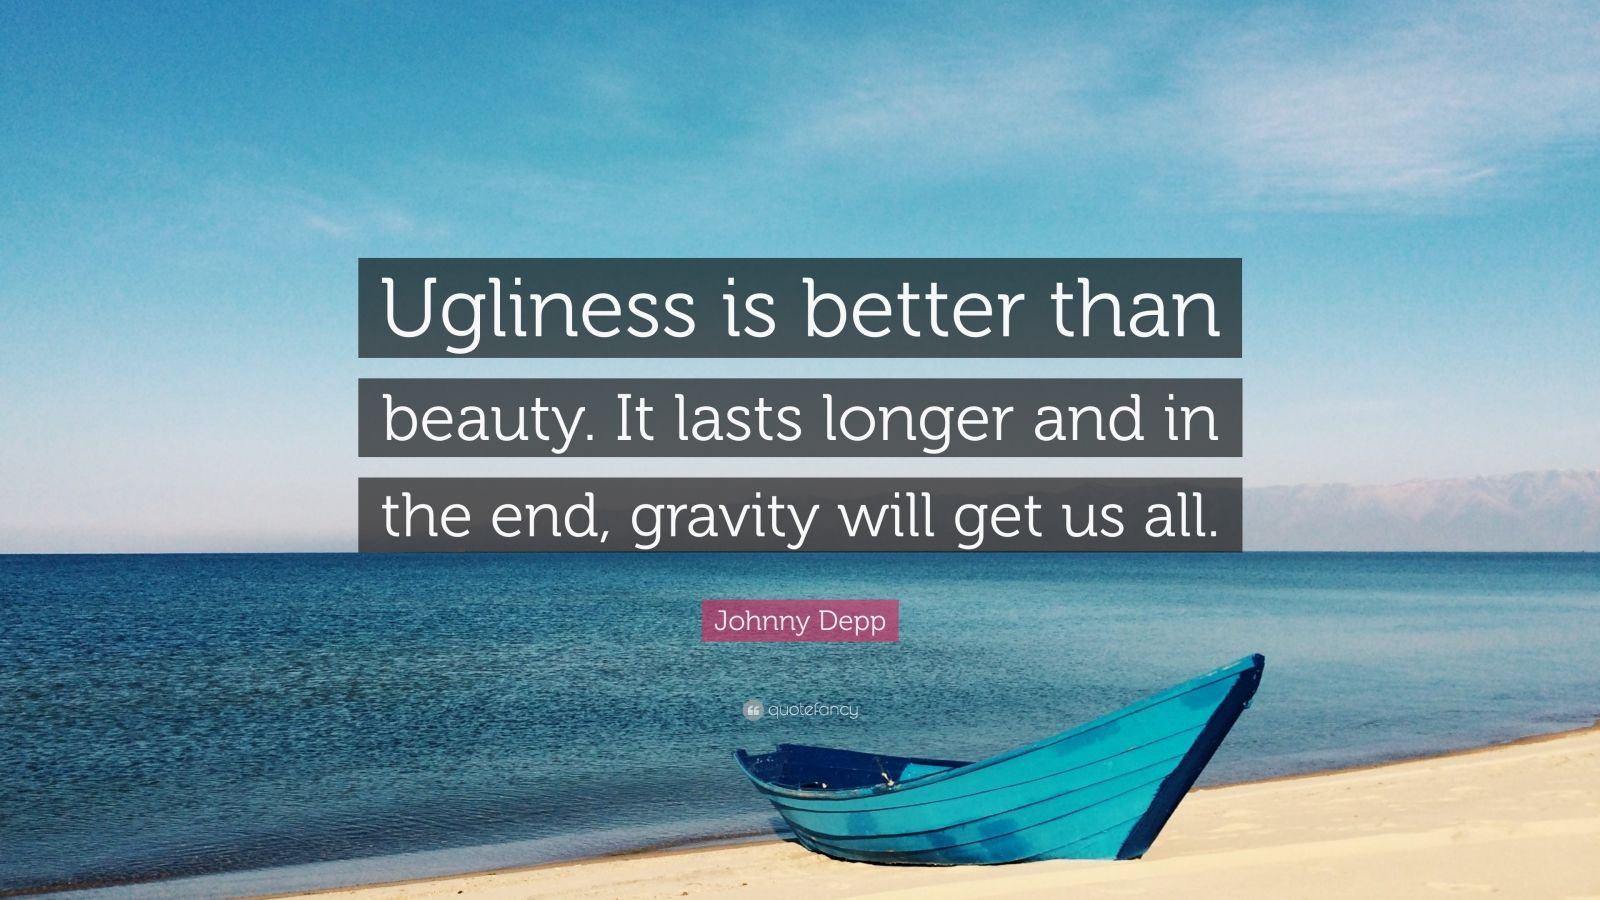 """Johnny Depp Quote: """"Ugliness is better than beauty. It lasts longer and in the end, gravity will get us all."""""""